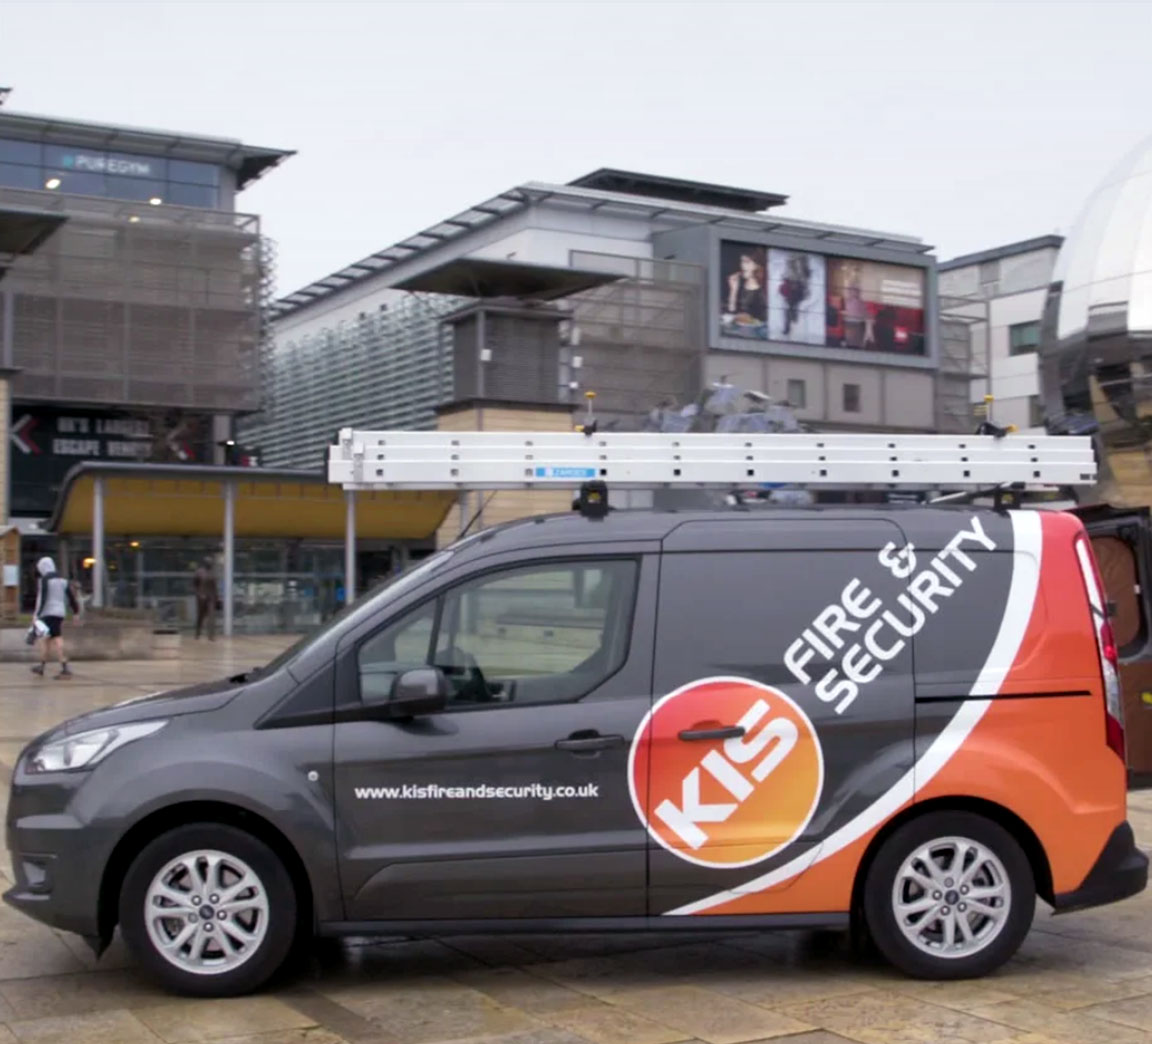 KIS Fire & Security van